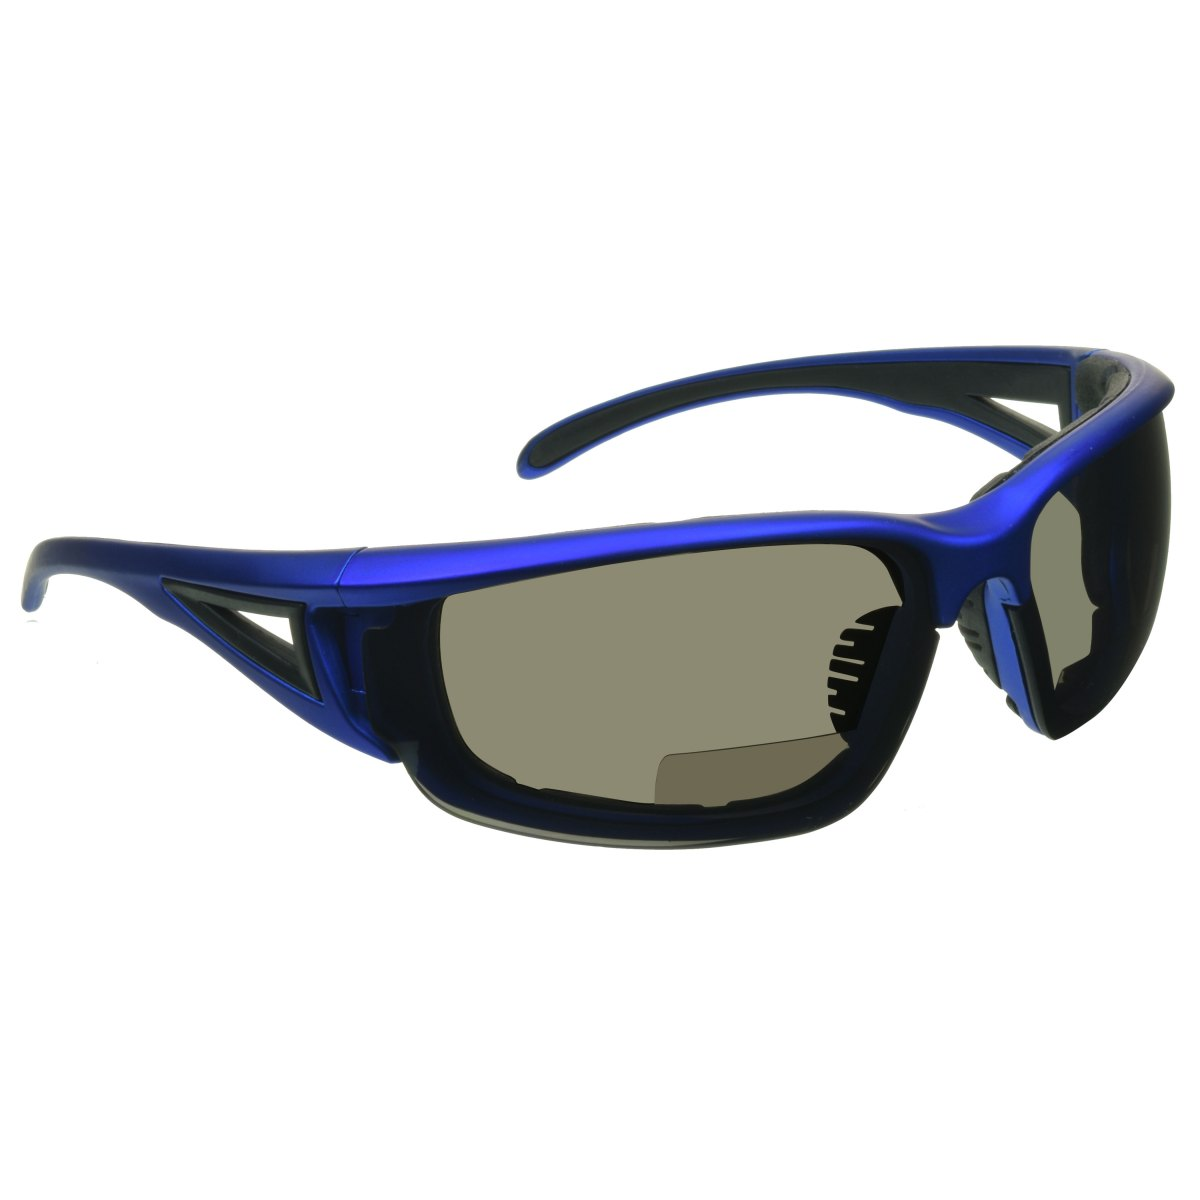 MOTORCYCLE BIKER Riding Padded Safety Protective SUN GLASSES GOGGLES Blue Lens